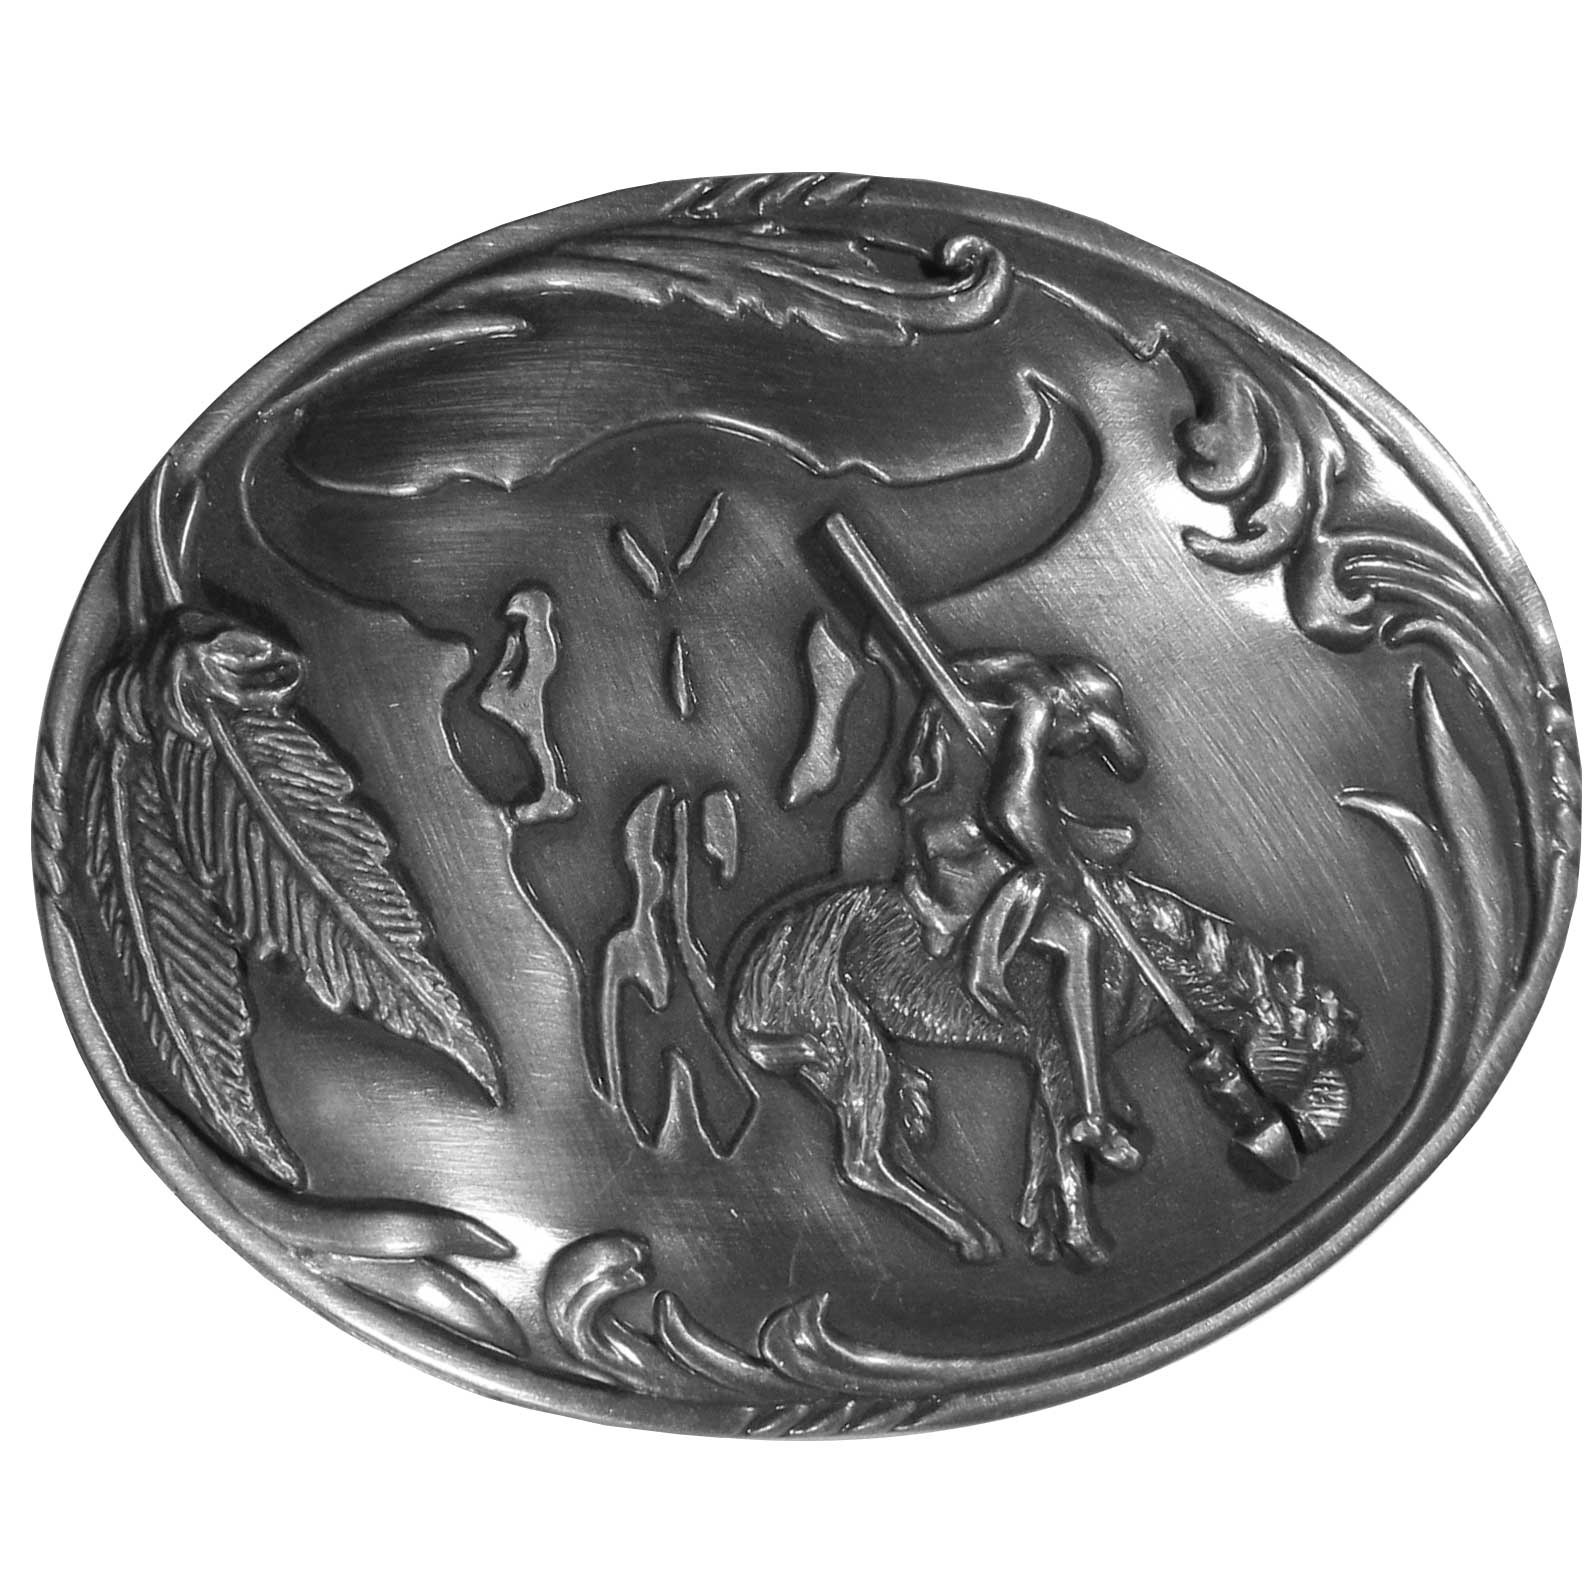 "End of the Trail with Buffalo Skull Background Antiqued Belt Buckle - ""End of the Trail buckle depicts an American Indian brave hanging limp as his horse comes to an abrupt halt just prior to momentum carrying him over an unseen precipice.  In the background is the silhouette of a bison skull and feathers.  On the back are the words, """"End of the Trail, for all the world one prayer that all men live as brothers and peace reign everywhere."""""""